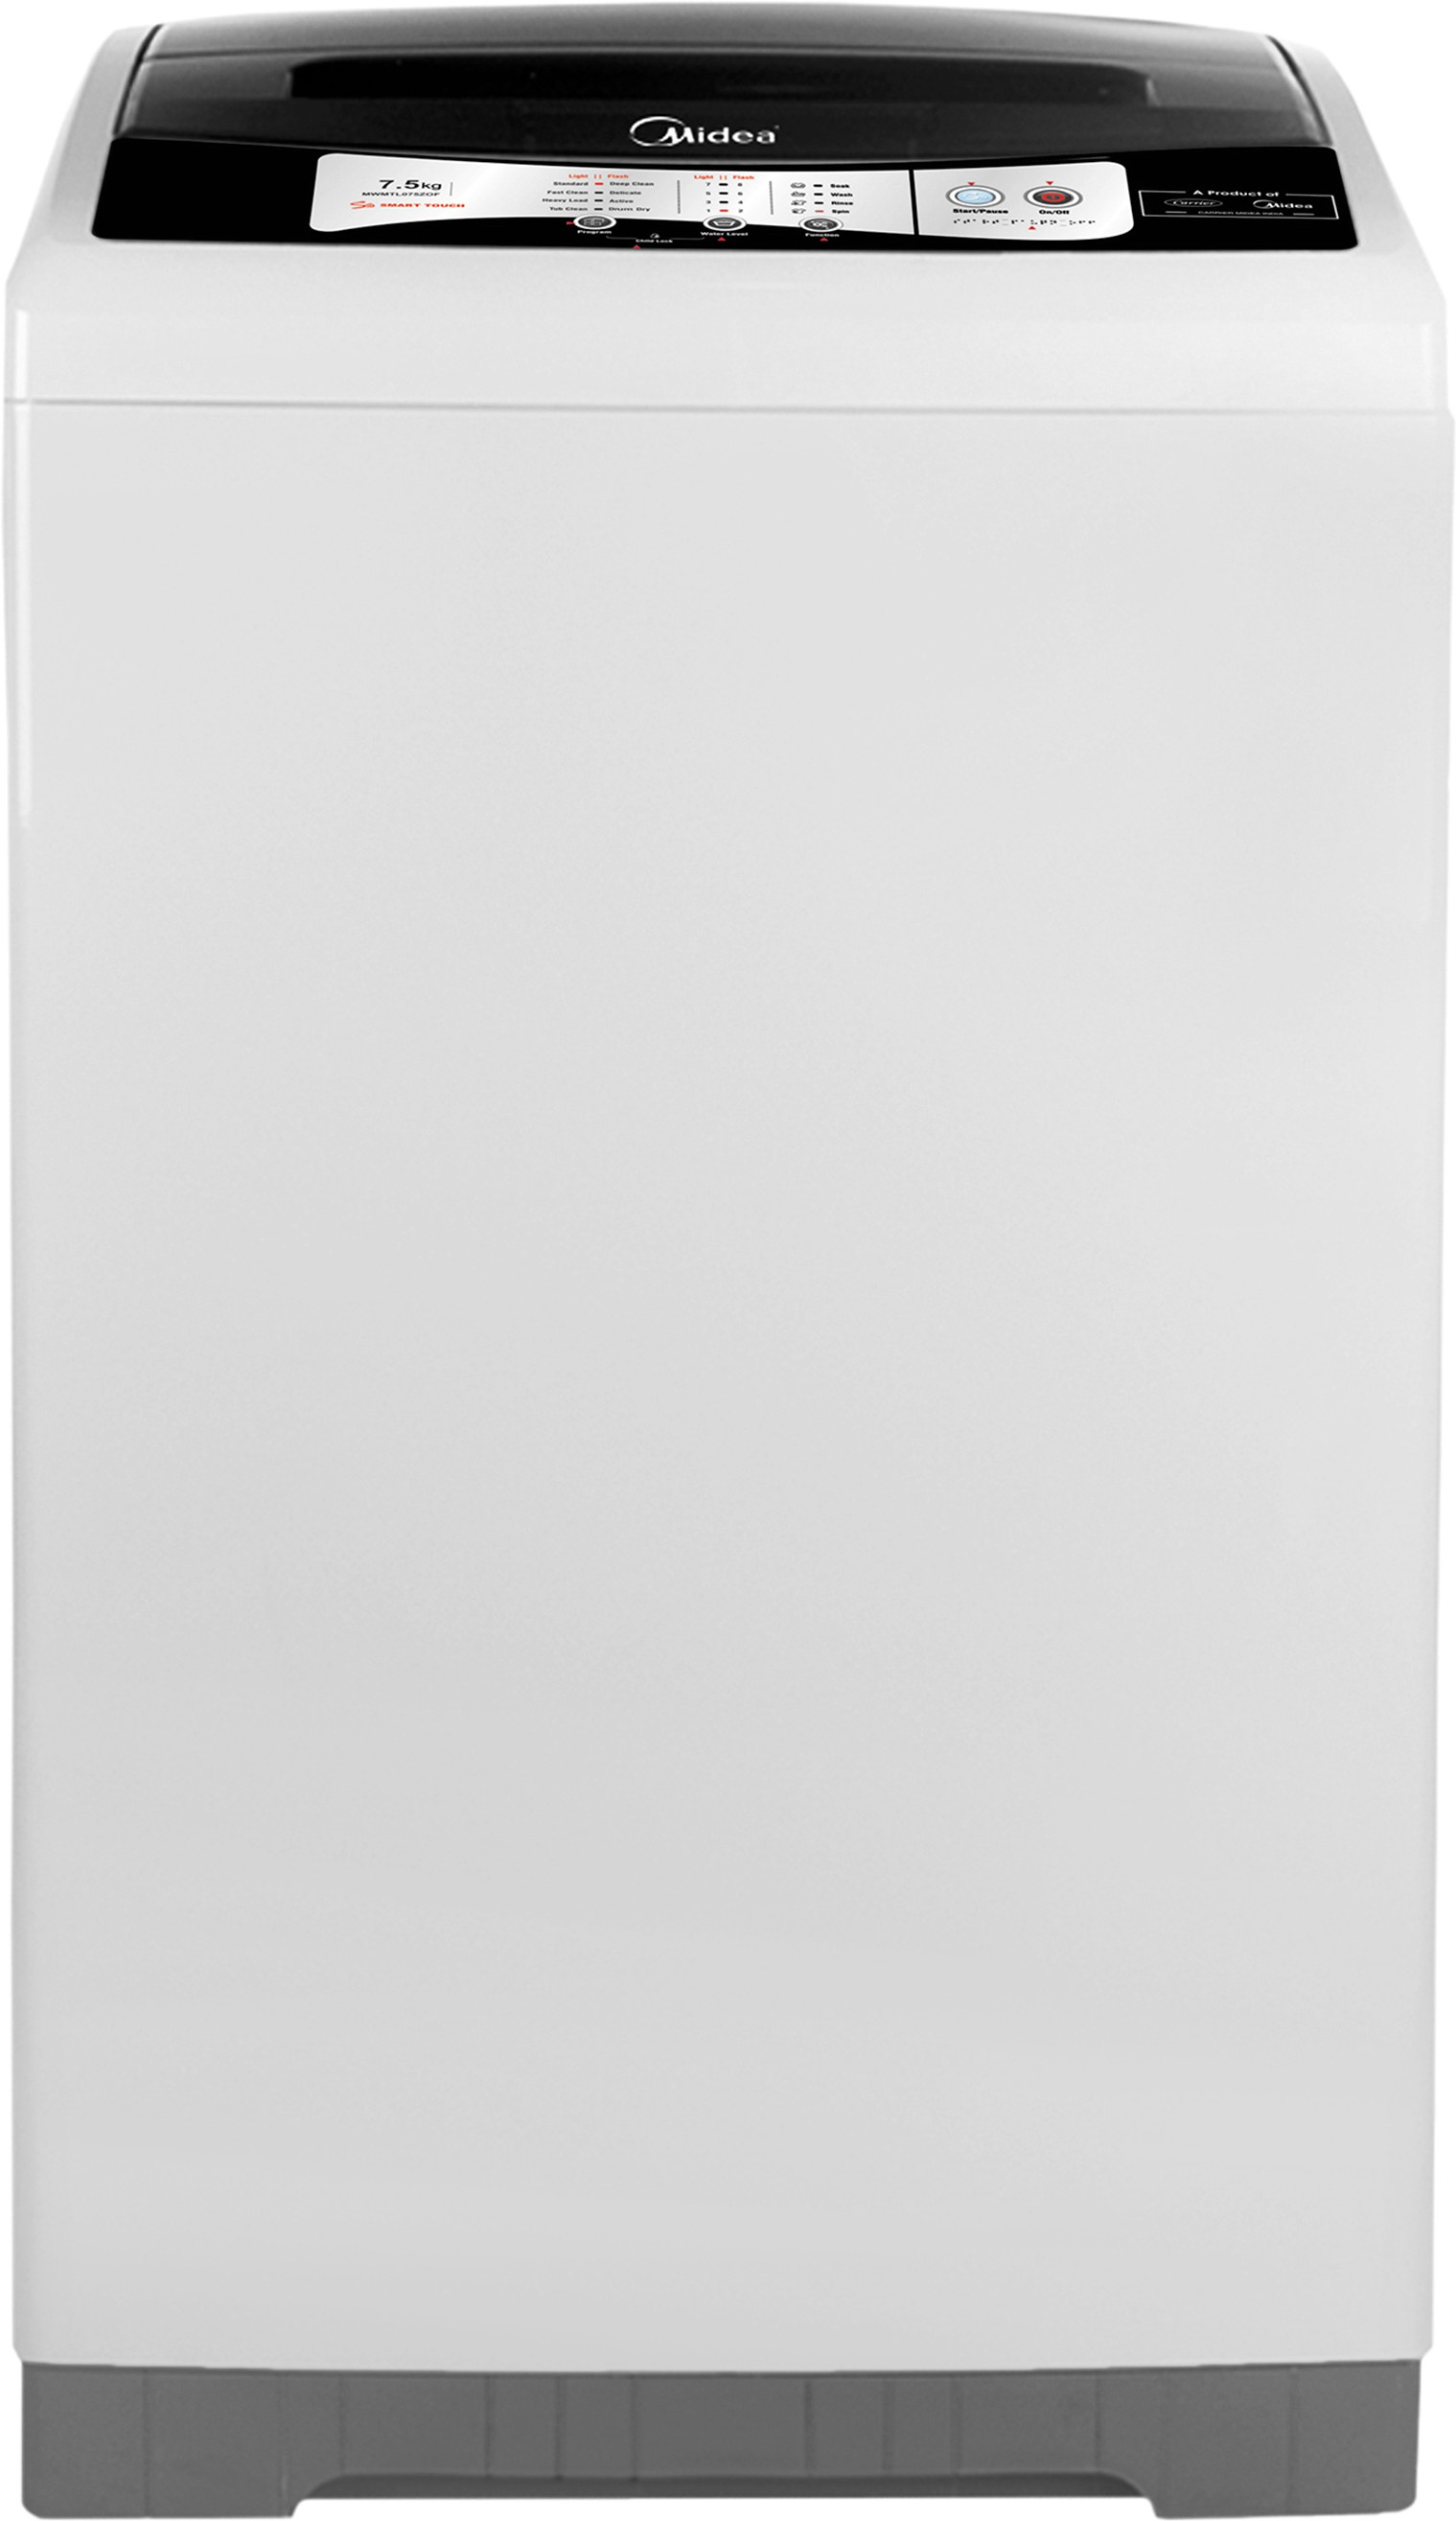 Midea 7.5 kg Fully Automatic Top Load Washing Machine (MWMTL075ZOF) Image